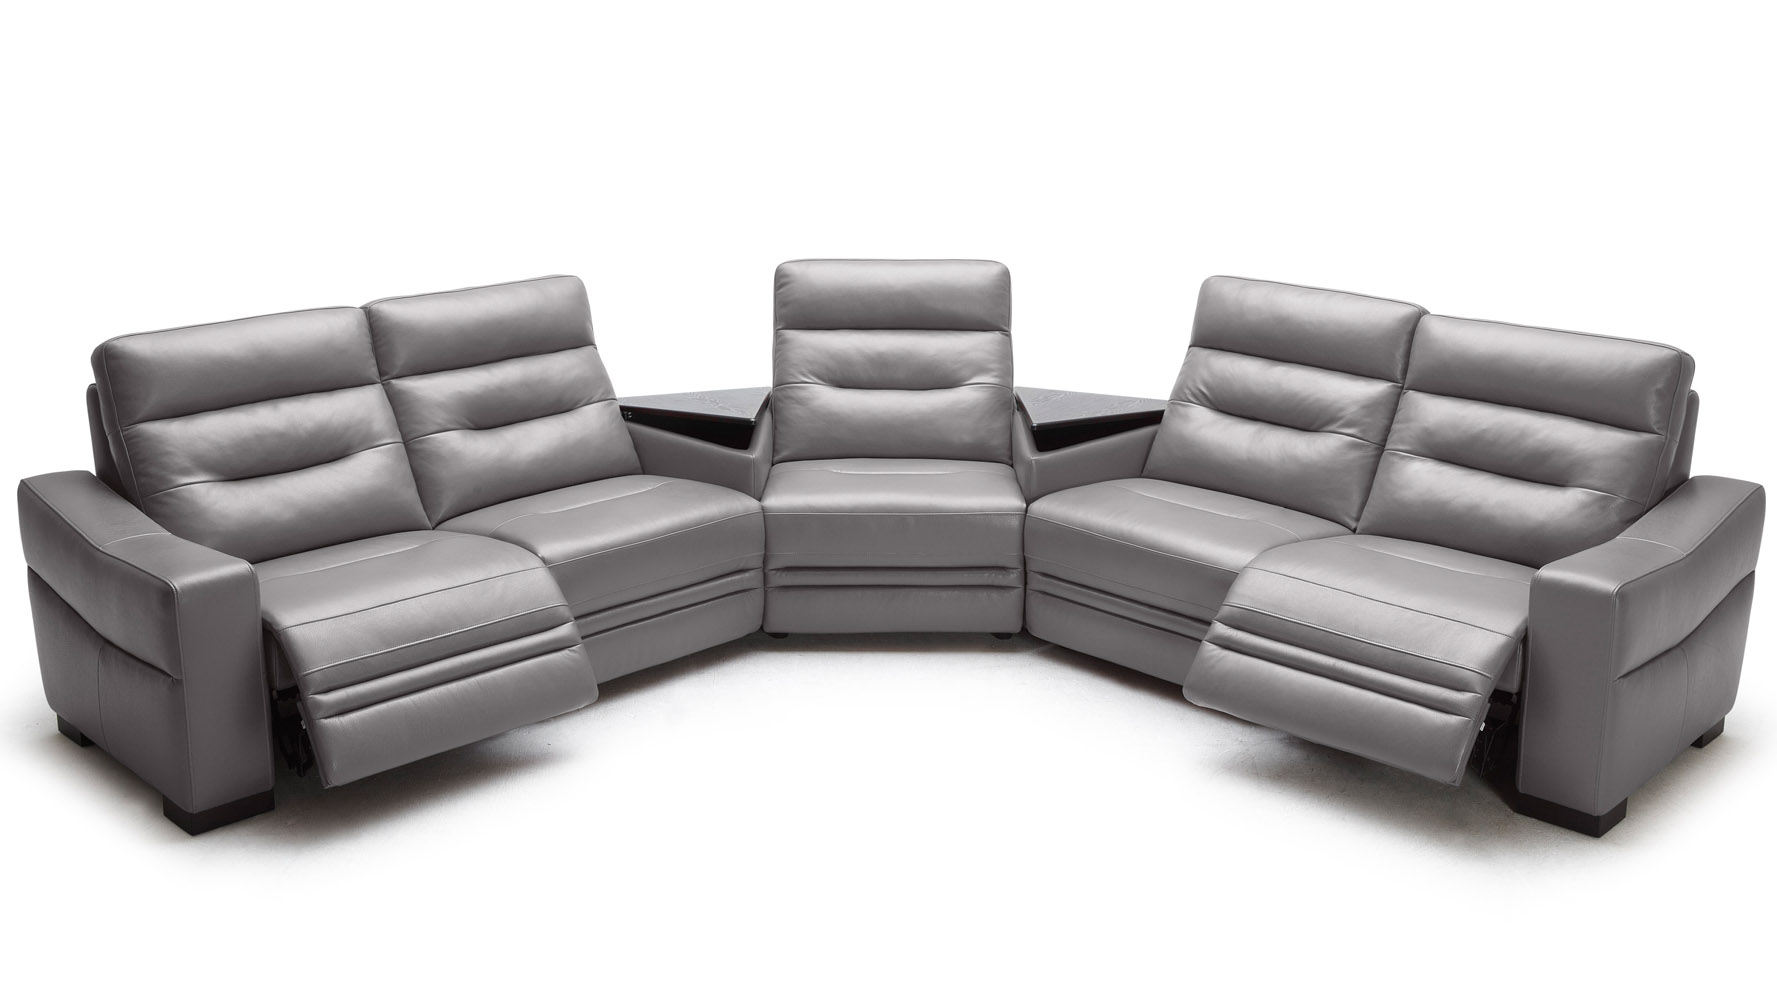 light gray leather sofa set review best sofas media recliner home the honoroak